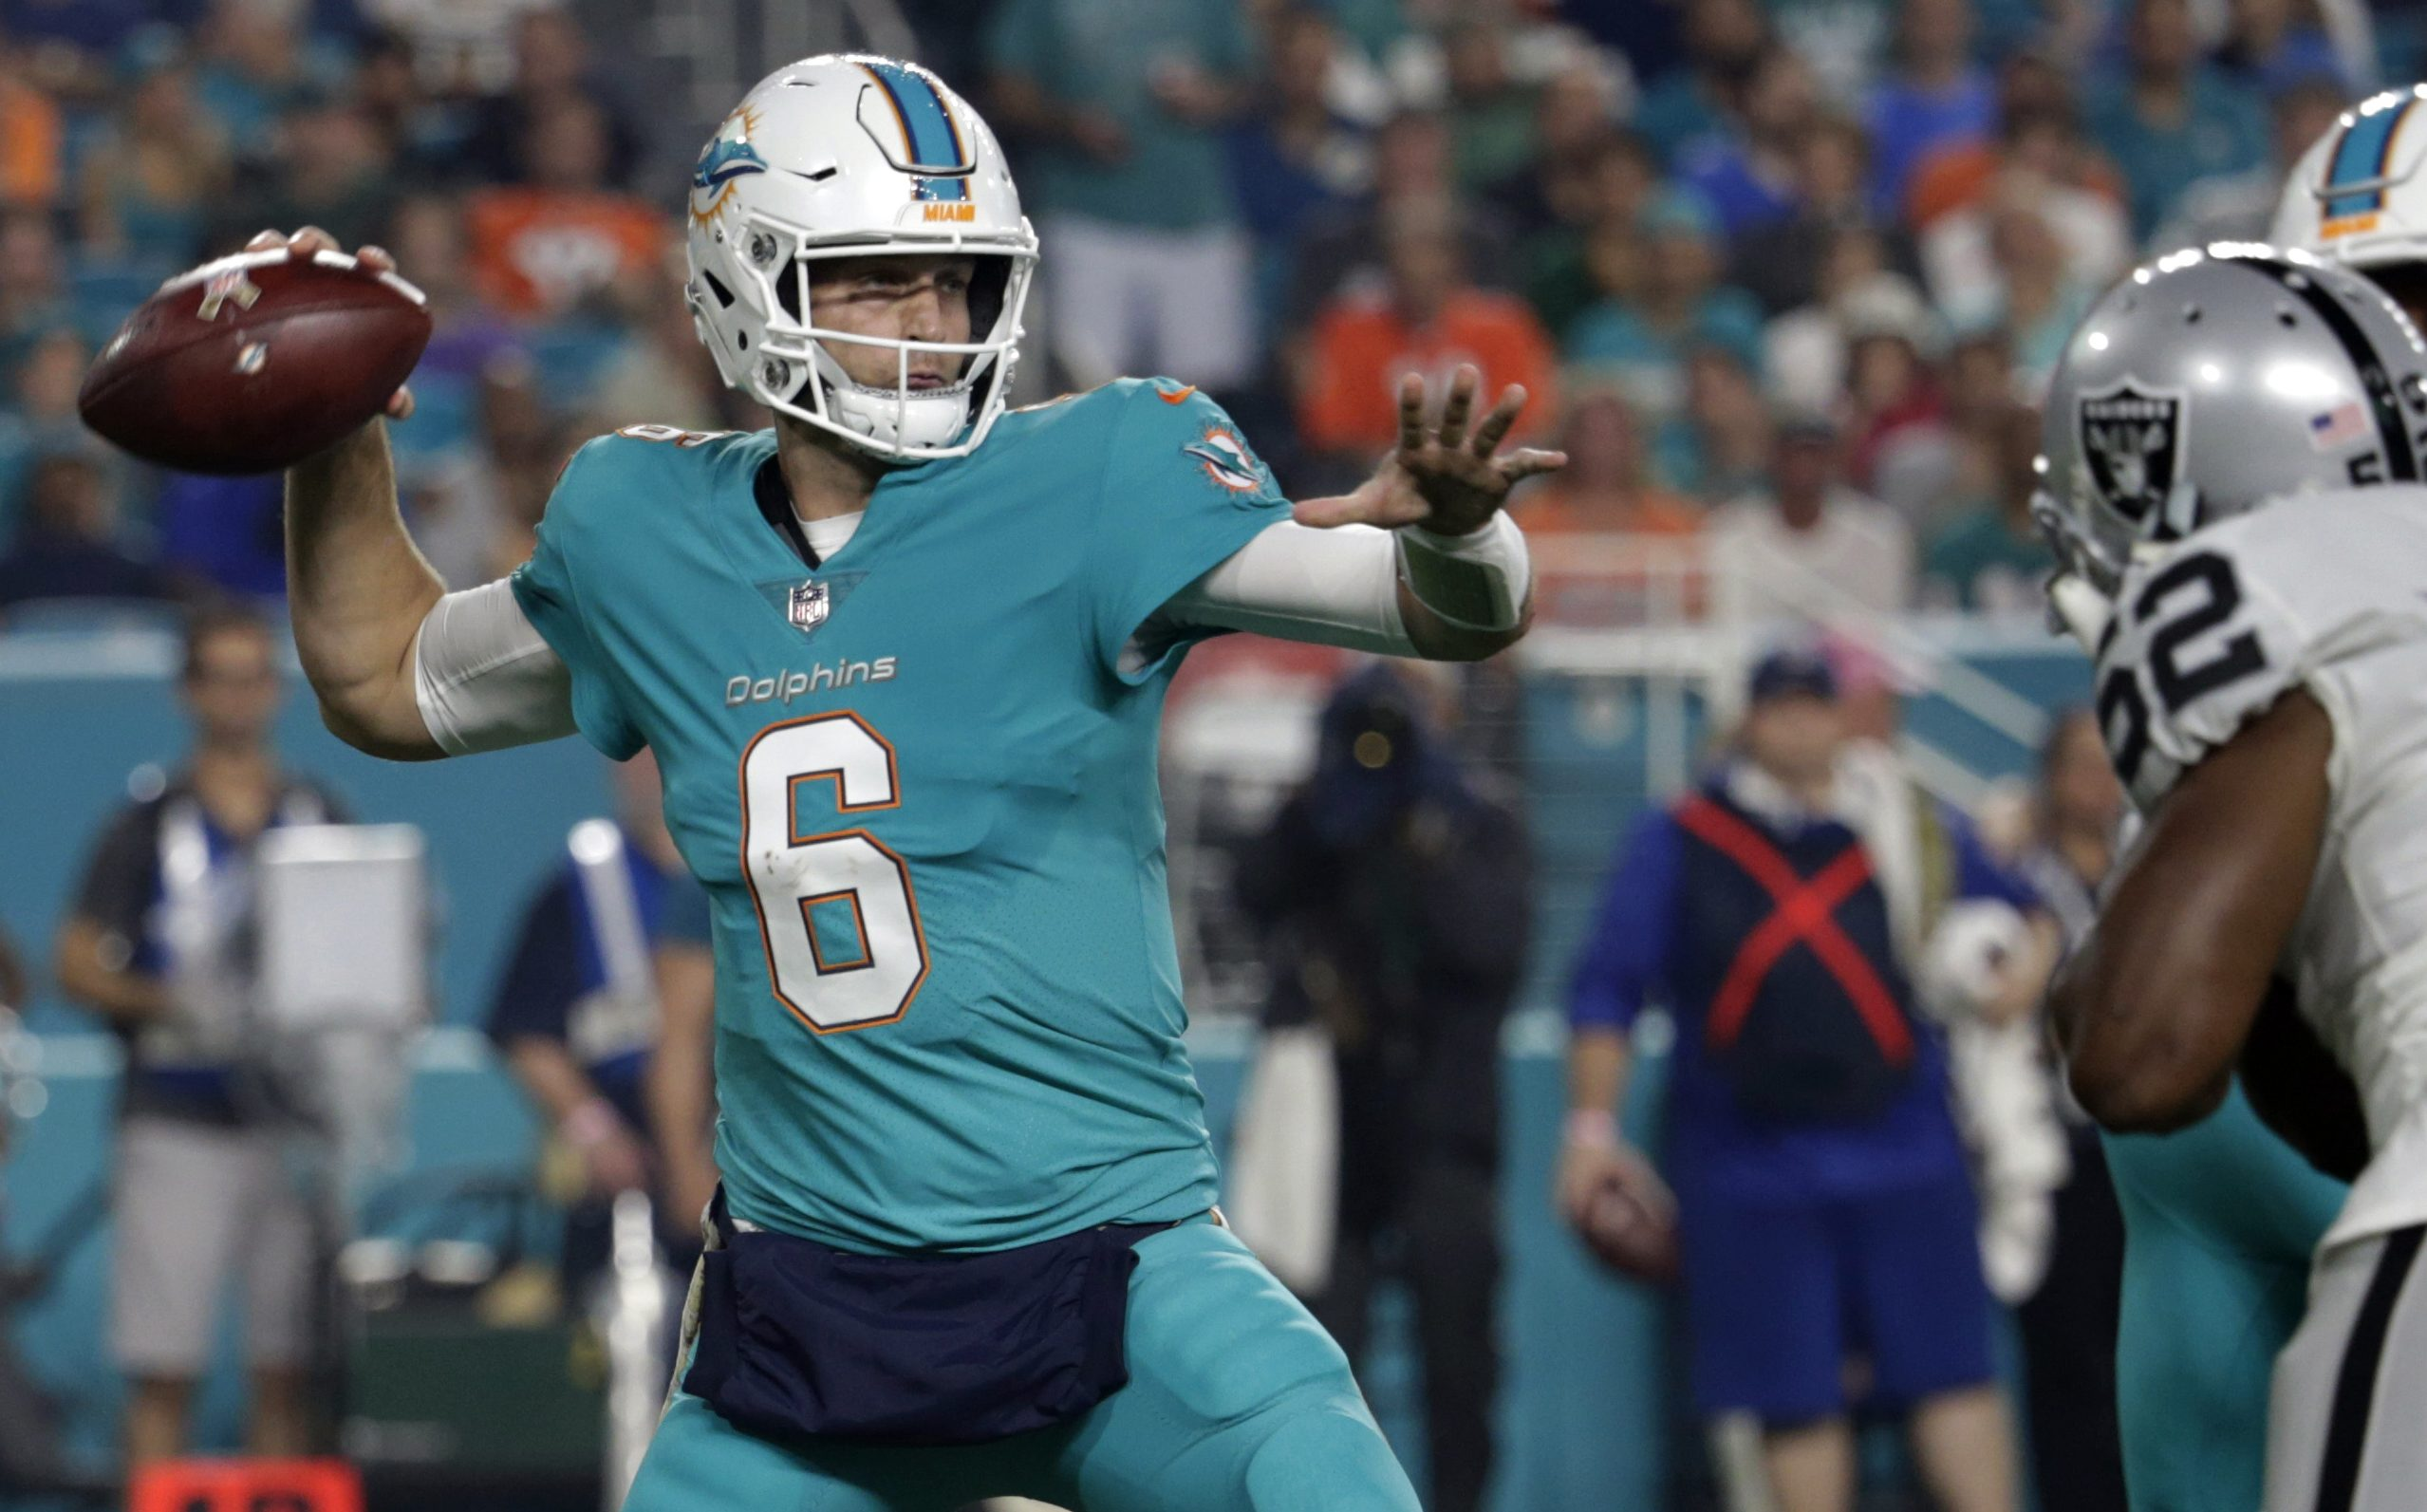 Miami Dolphins quarterback Jay Cutler (6) looks to pass, during the first half of an NFL football game against the Oakland Raiders, Sunday, Nov. 5, 2017, in Miami Gardens, Fla. (AP Photo/Lynne Sladky)